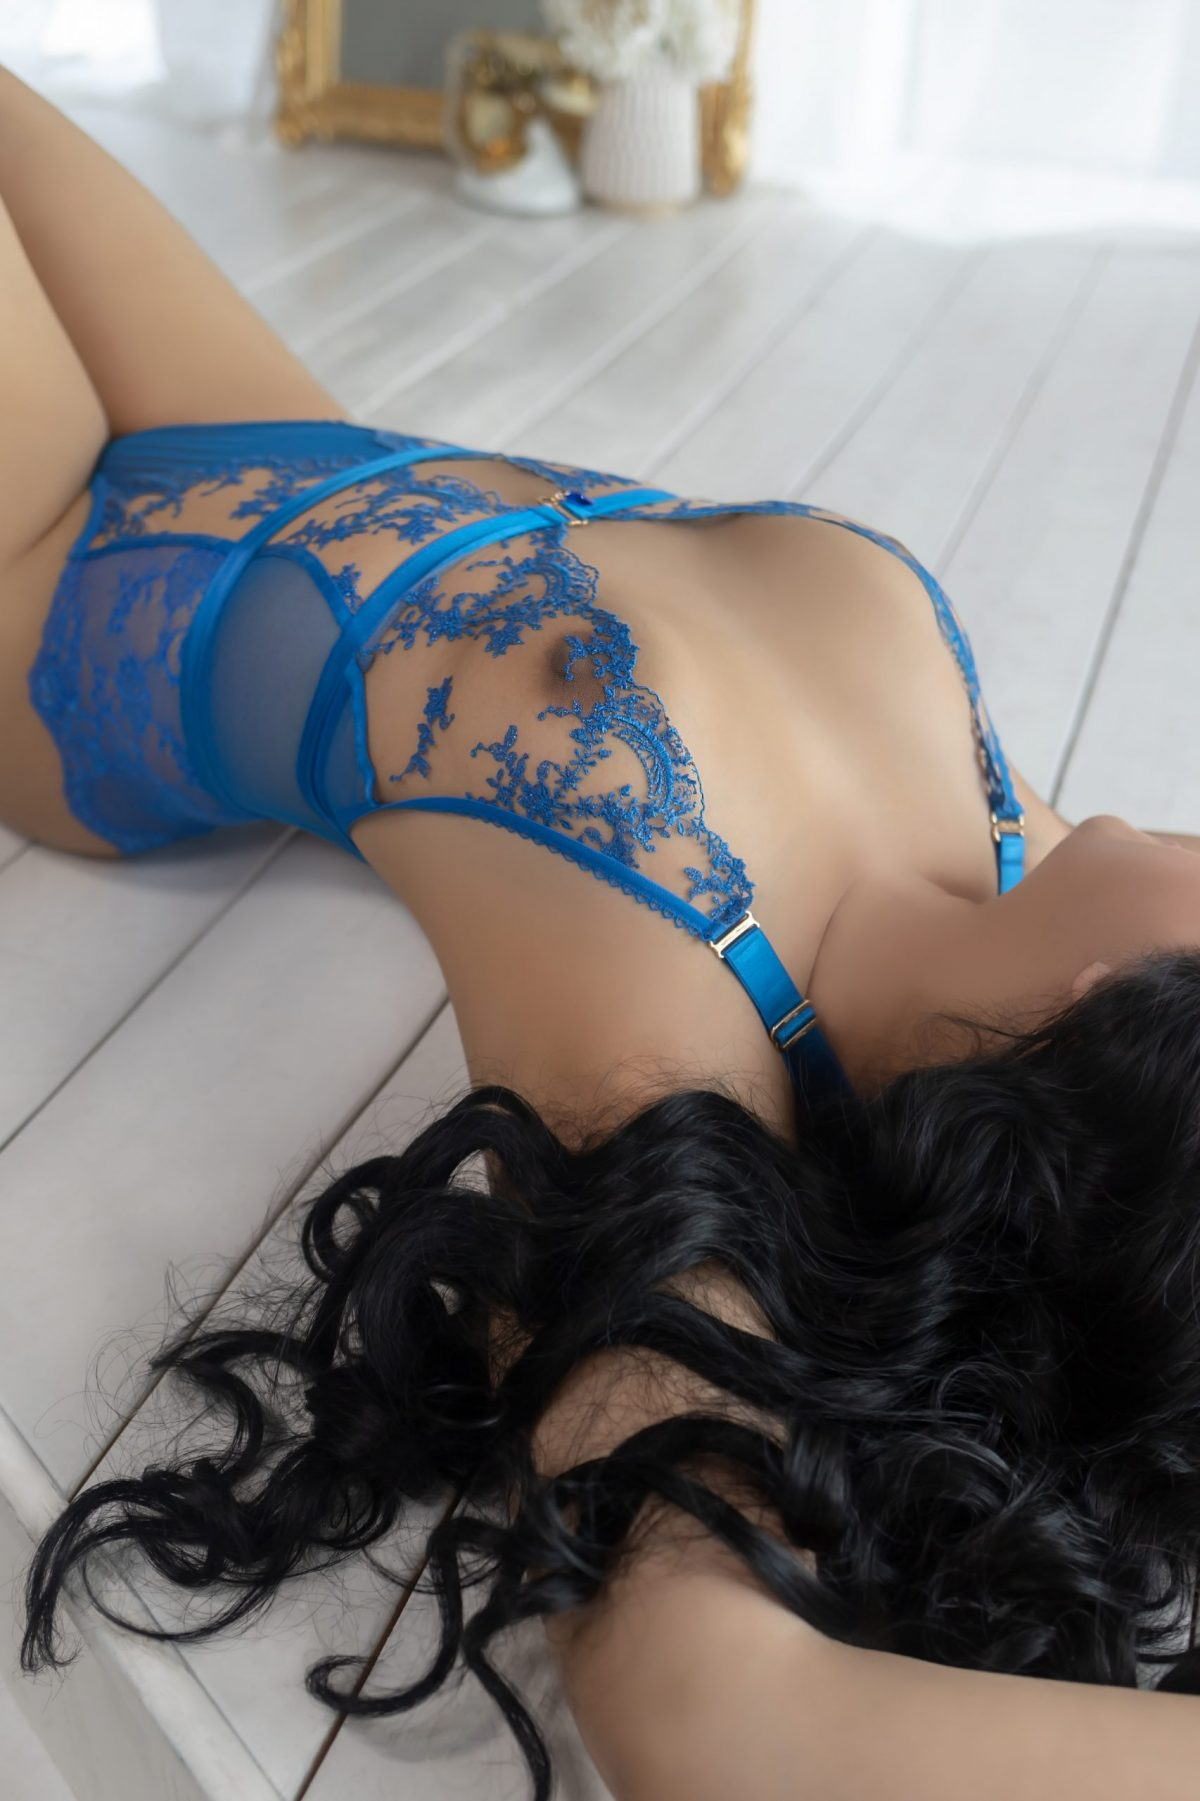 Toronto escorts companion upscale Celine Interests Disability-friendly Non-smoking Age Mature Figure Slender Curvy Petite Breasts Natural Hair Raven-Haired Ethnicity European Tattoos None Arrival New Photos